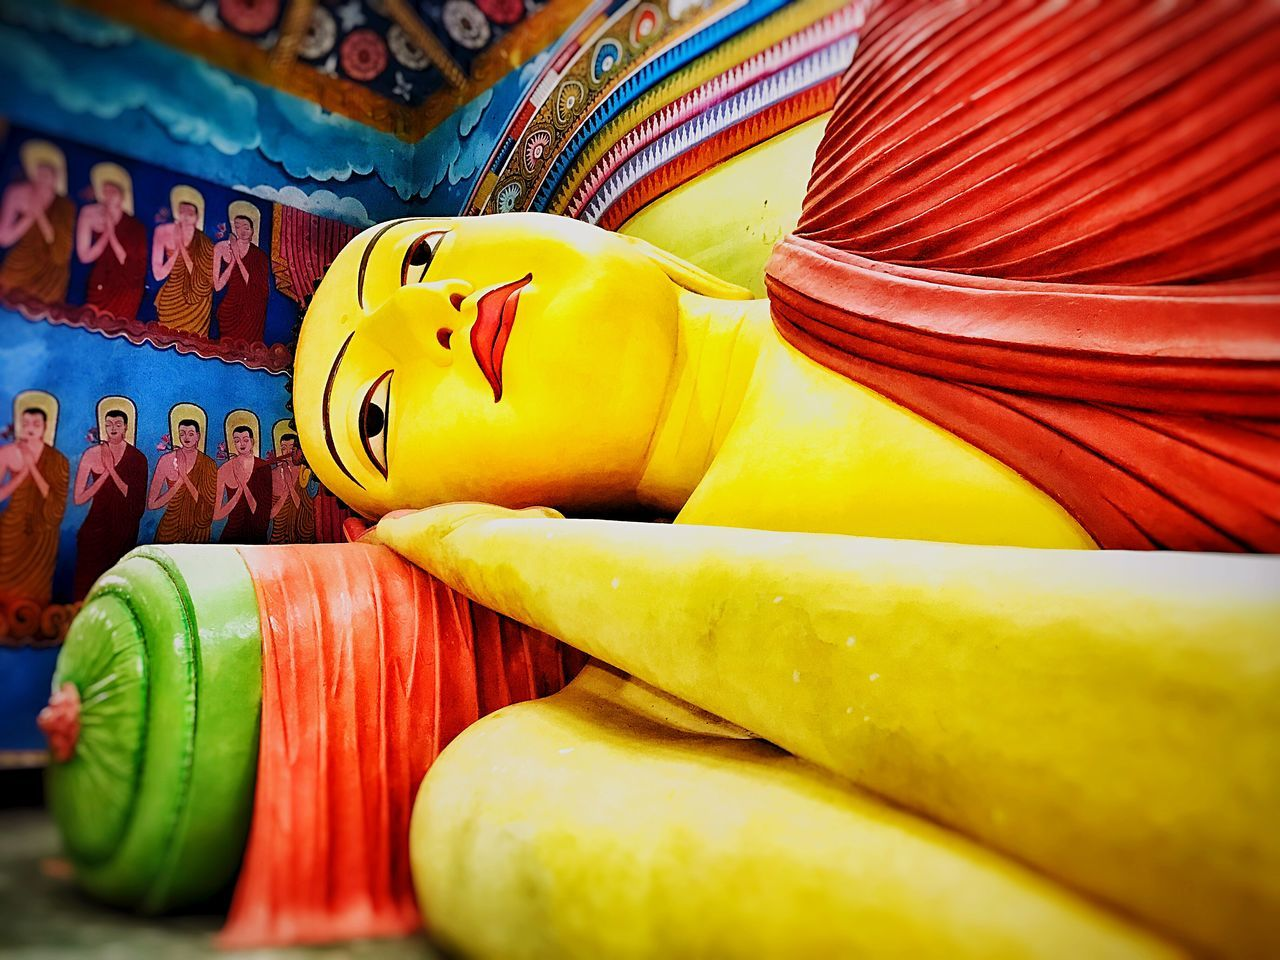 Reclining Buddha Art And Craft Multi Colored Yellow No People Indoors  Close-up Place Of Worship ASIA Religious  Indoors  Sculpture Statue Spirituality Religion Buddhism Buddhist Buddhist Temple Buddha Art Is Everywhere BYOPaper!